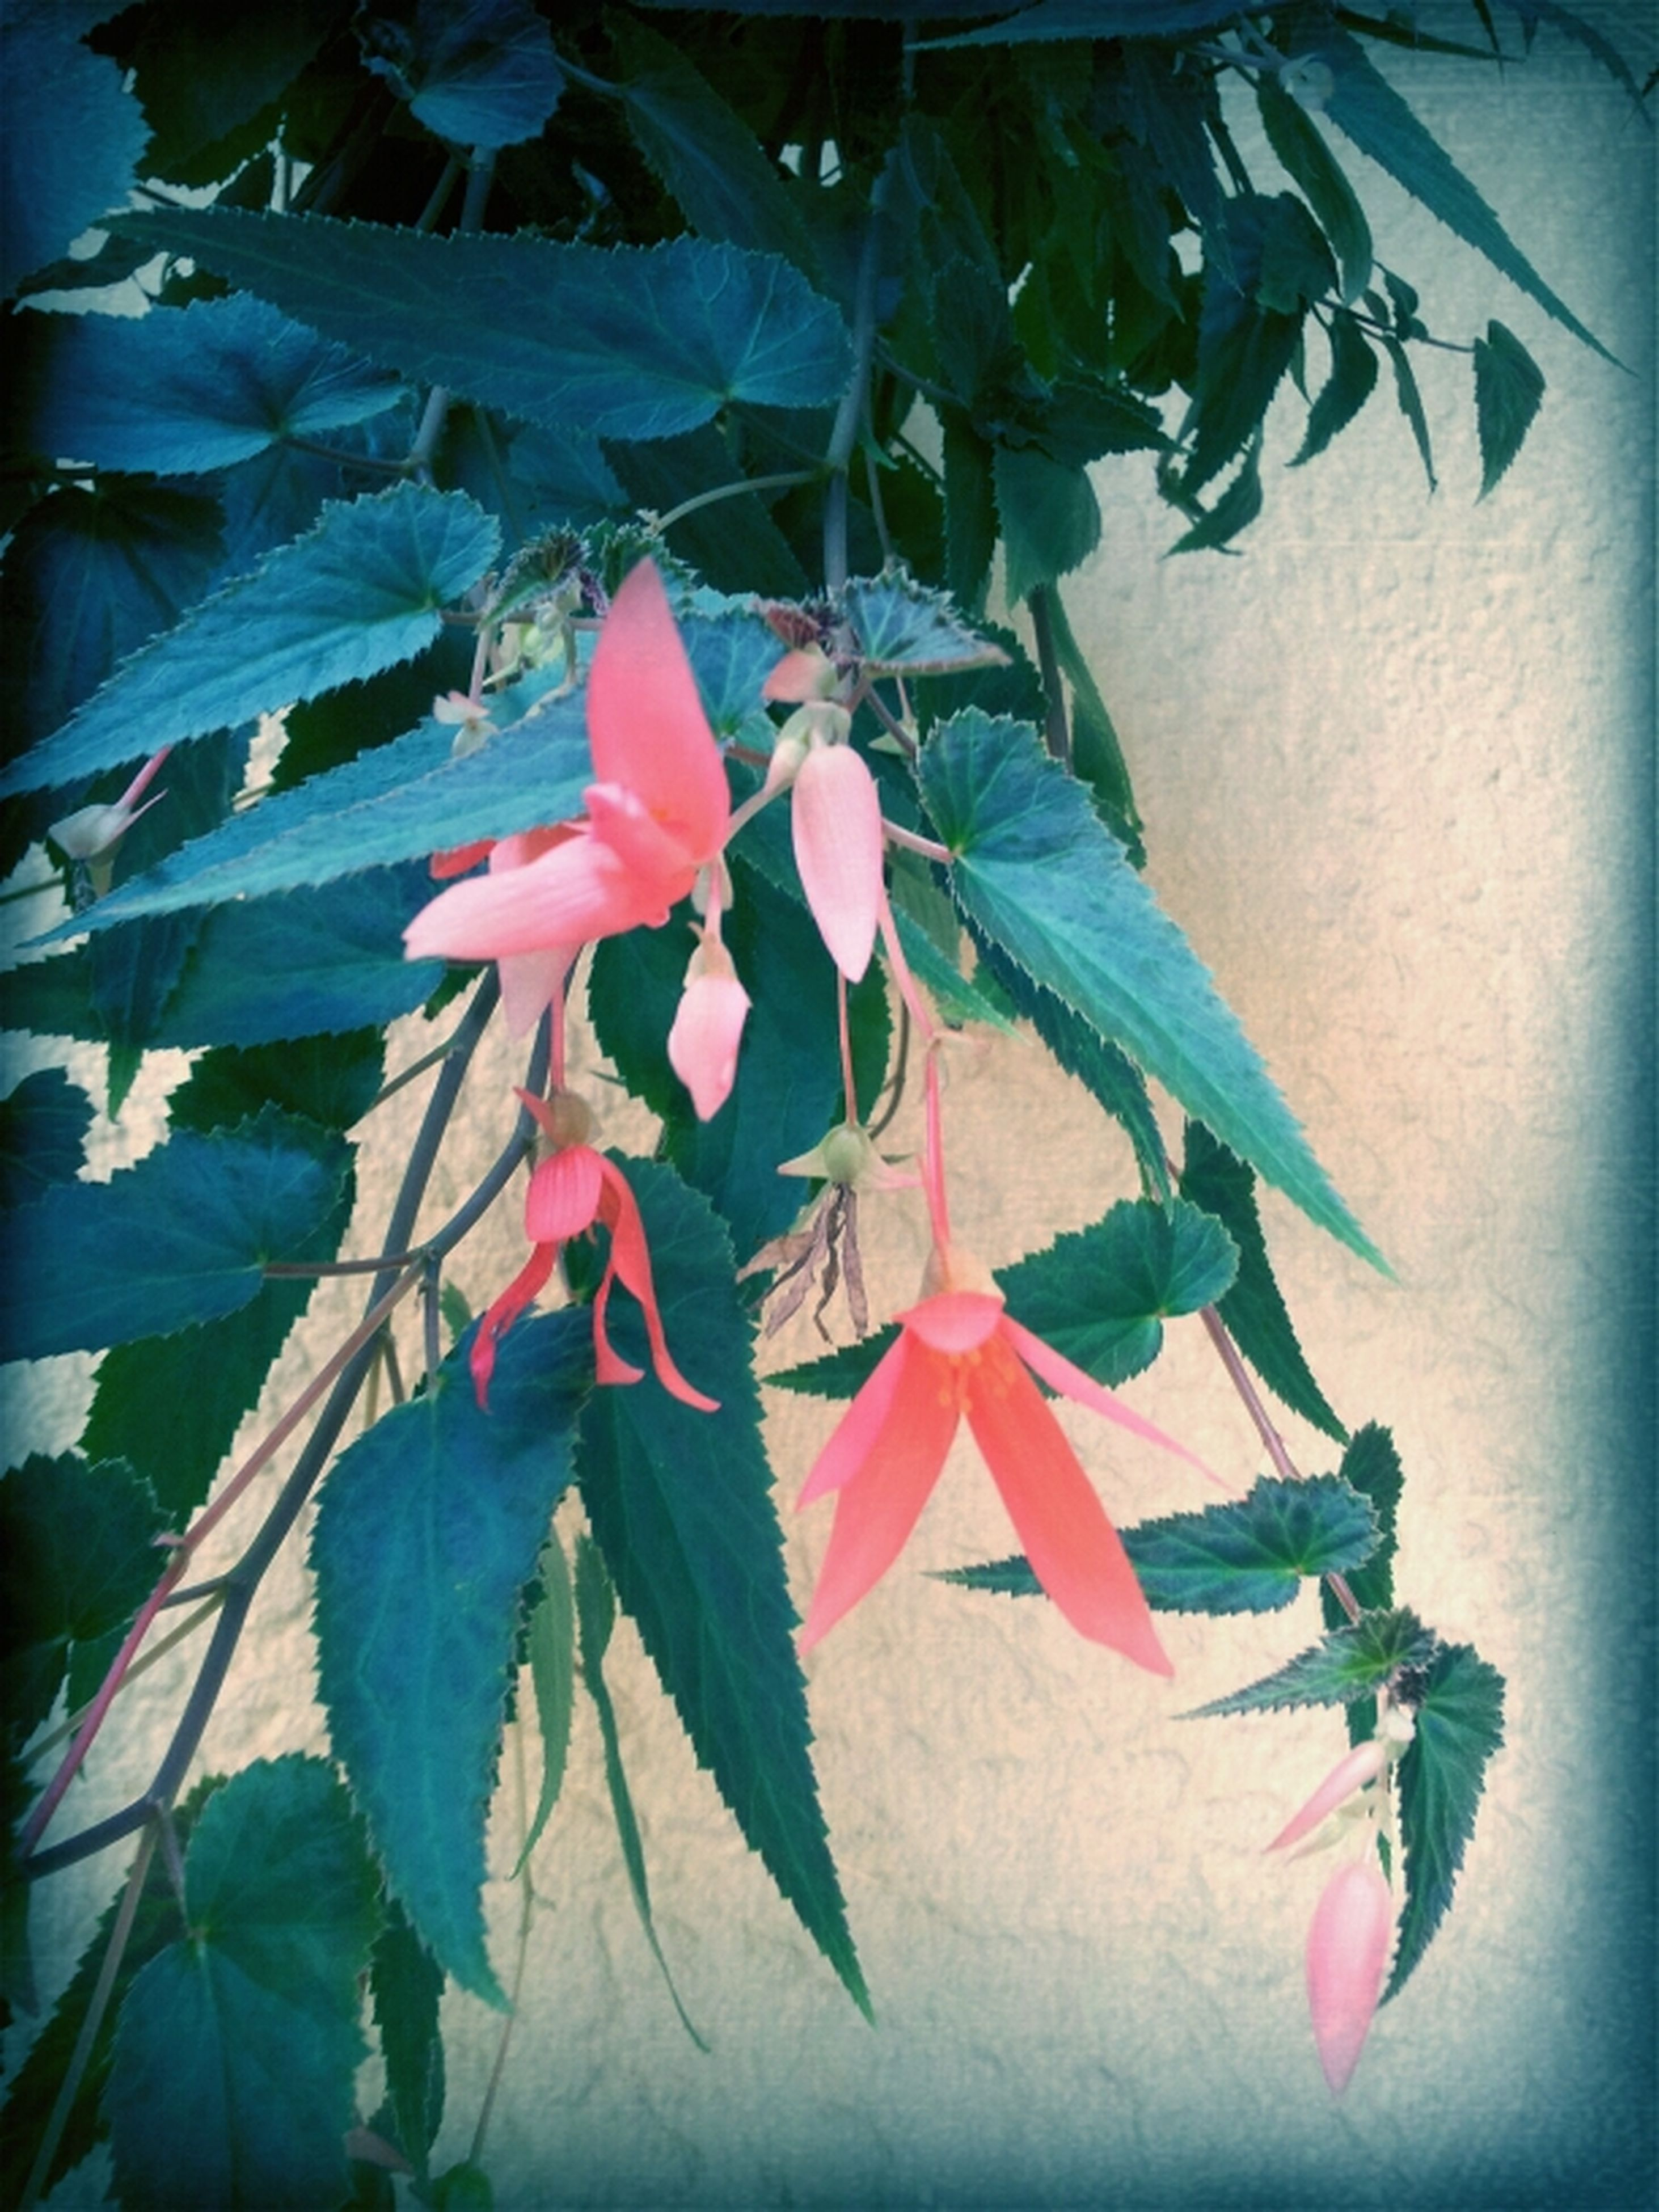 leaf, flower, low angle view, growth, petal, fragility, plant, freshness, wall - building feature, nature, close-up, beauty in nature, no people, built structure, day, hanging, multi colored, outdoors, flower head, decoration